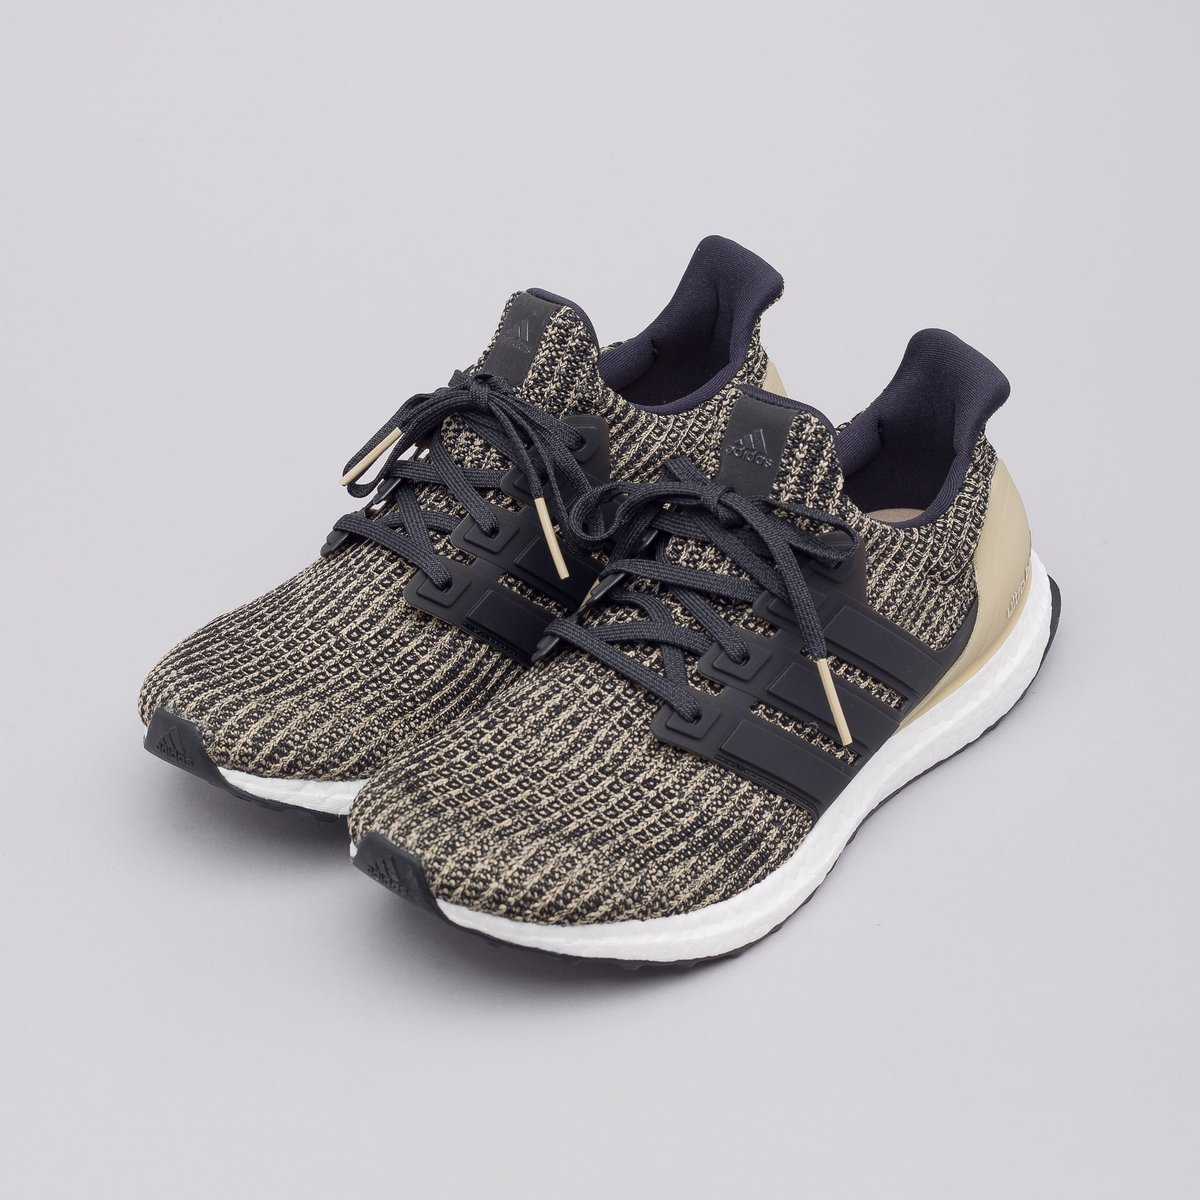 official photos 2a589 fba27 BOOST LINKS on Twitter: